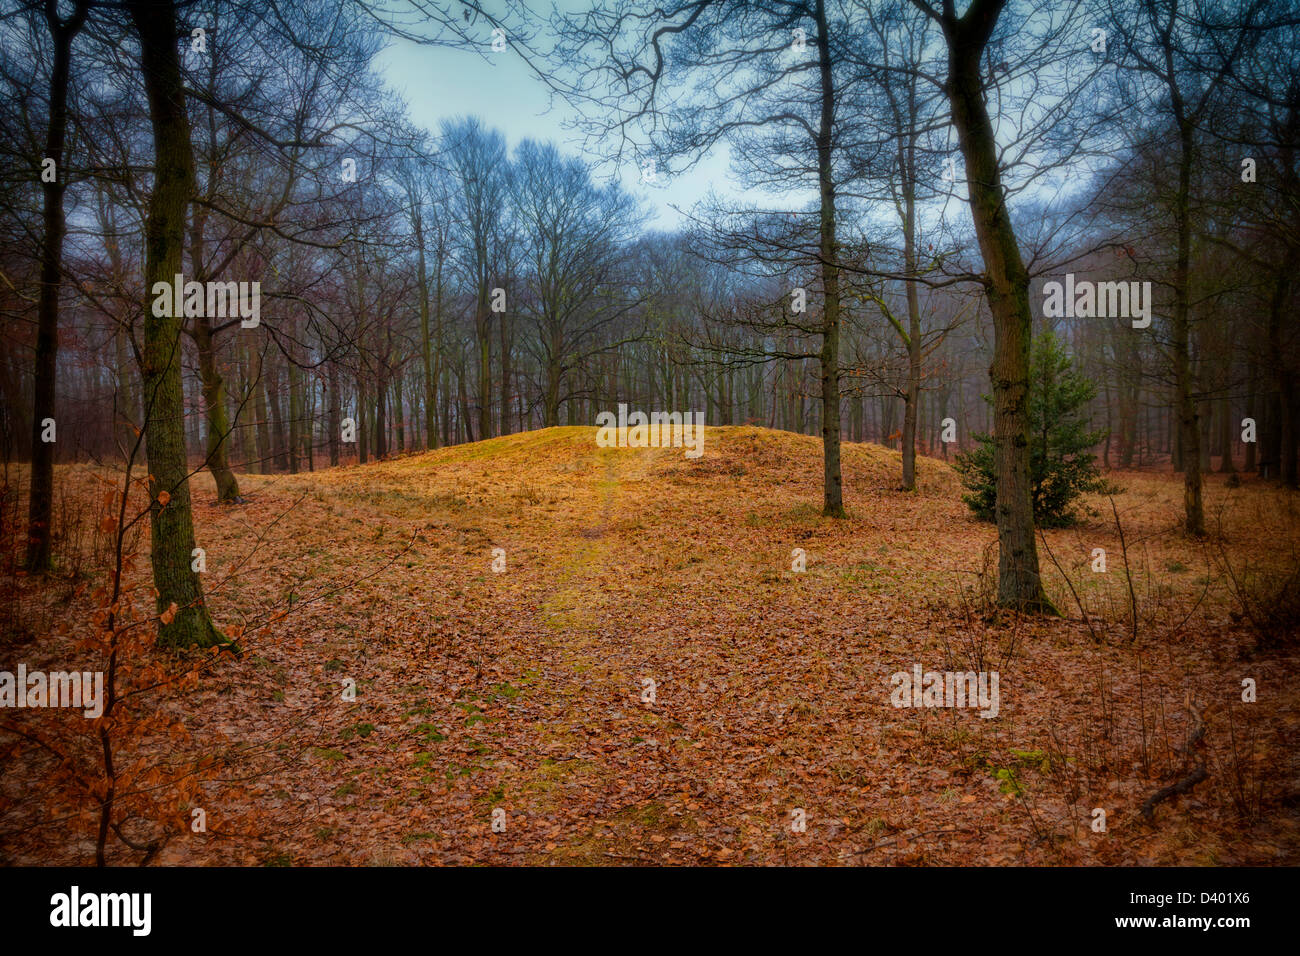 Gallows hill in Ribe, Denmark where the last witch in the country was burned - Stock Image